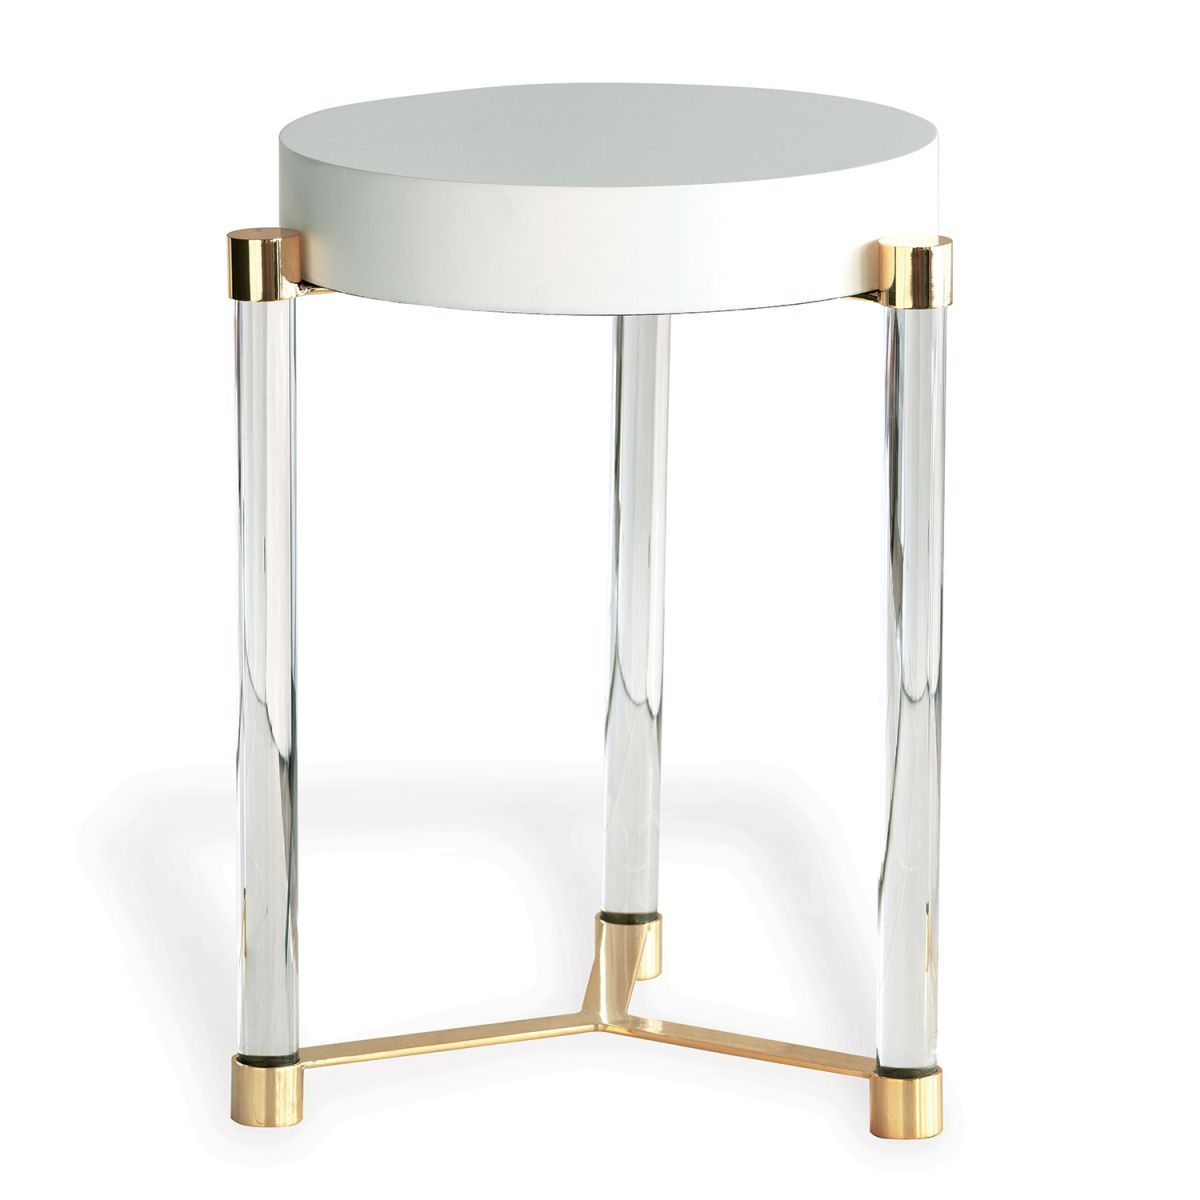 white and gold accent table design ideas afds mawr metal port maxwell oak wine cabinet clearance tables tall lamps ethan allen headboard acrylic round circular cotton tablecloths